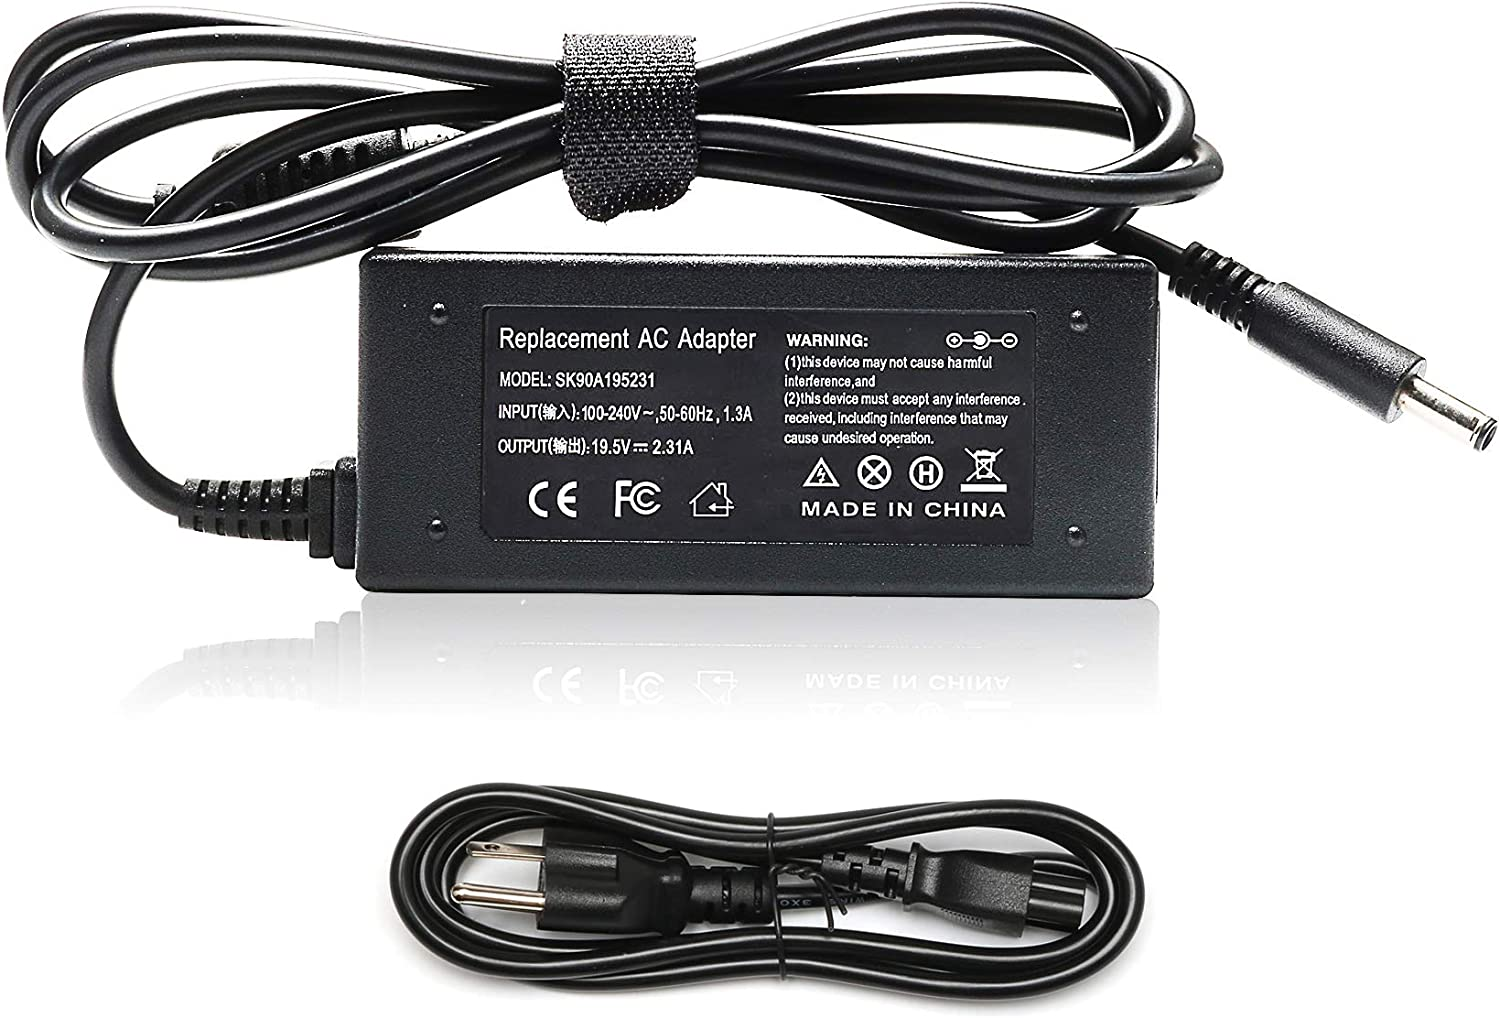 45W 19.5V 2.31A AC Adapter Laptop Charger for Dell Inspiron 13 14 15 17 Series 15 3551 3552 3558 5555 5558 5559 5565 5567 5568 5578 7558 13 5378 7347 7352 17 5755 5758 5759 Notebook Power Supply Cord